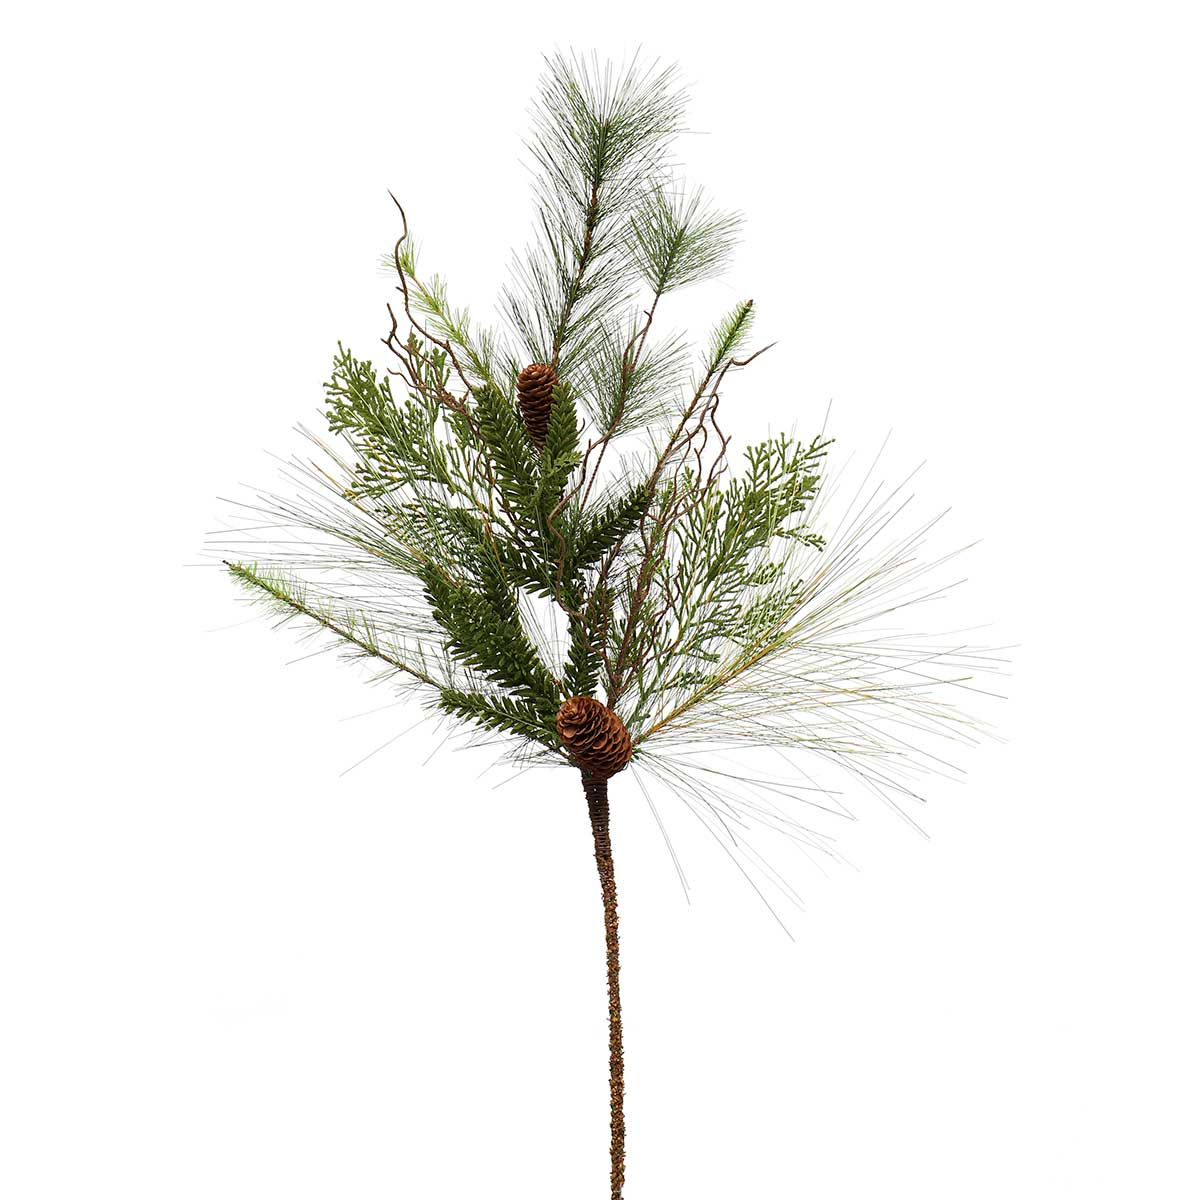 MIXED LONG NEEDLE PINE